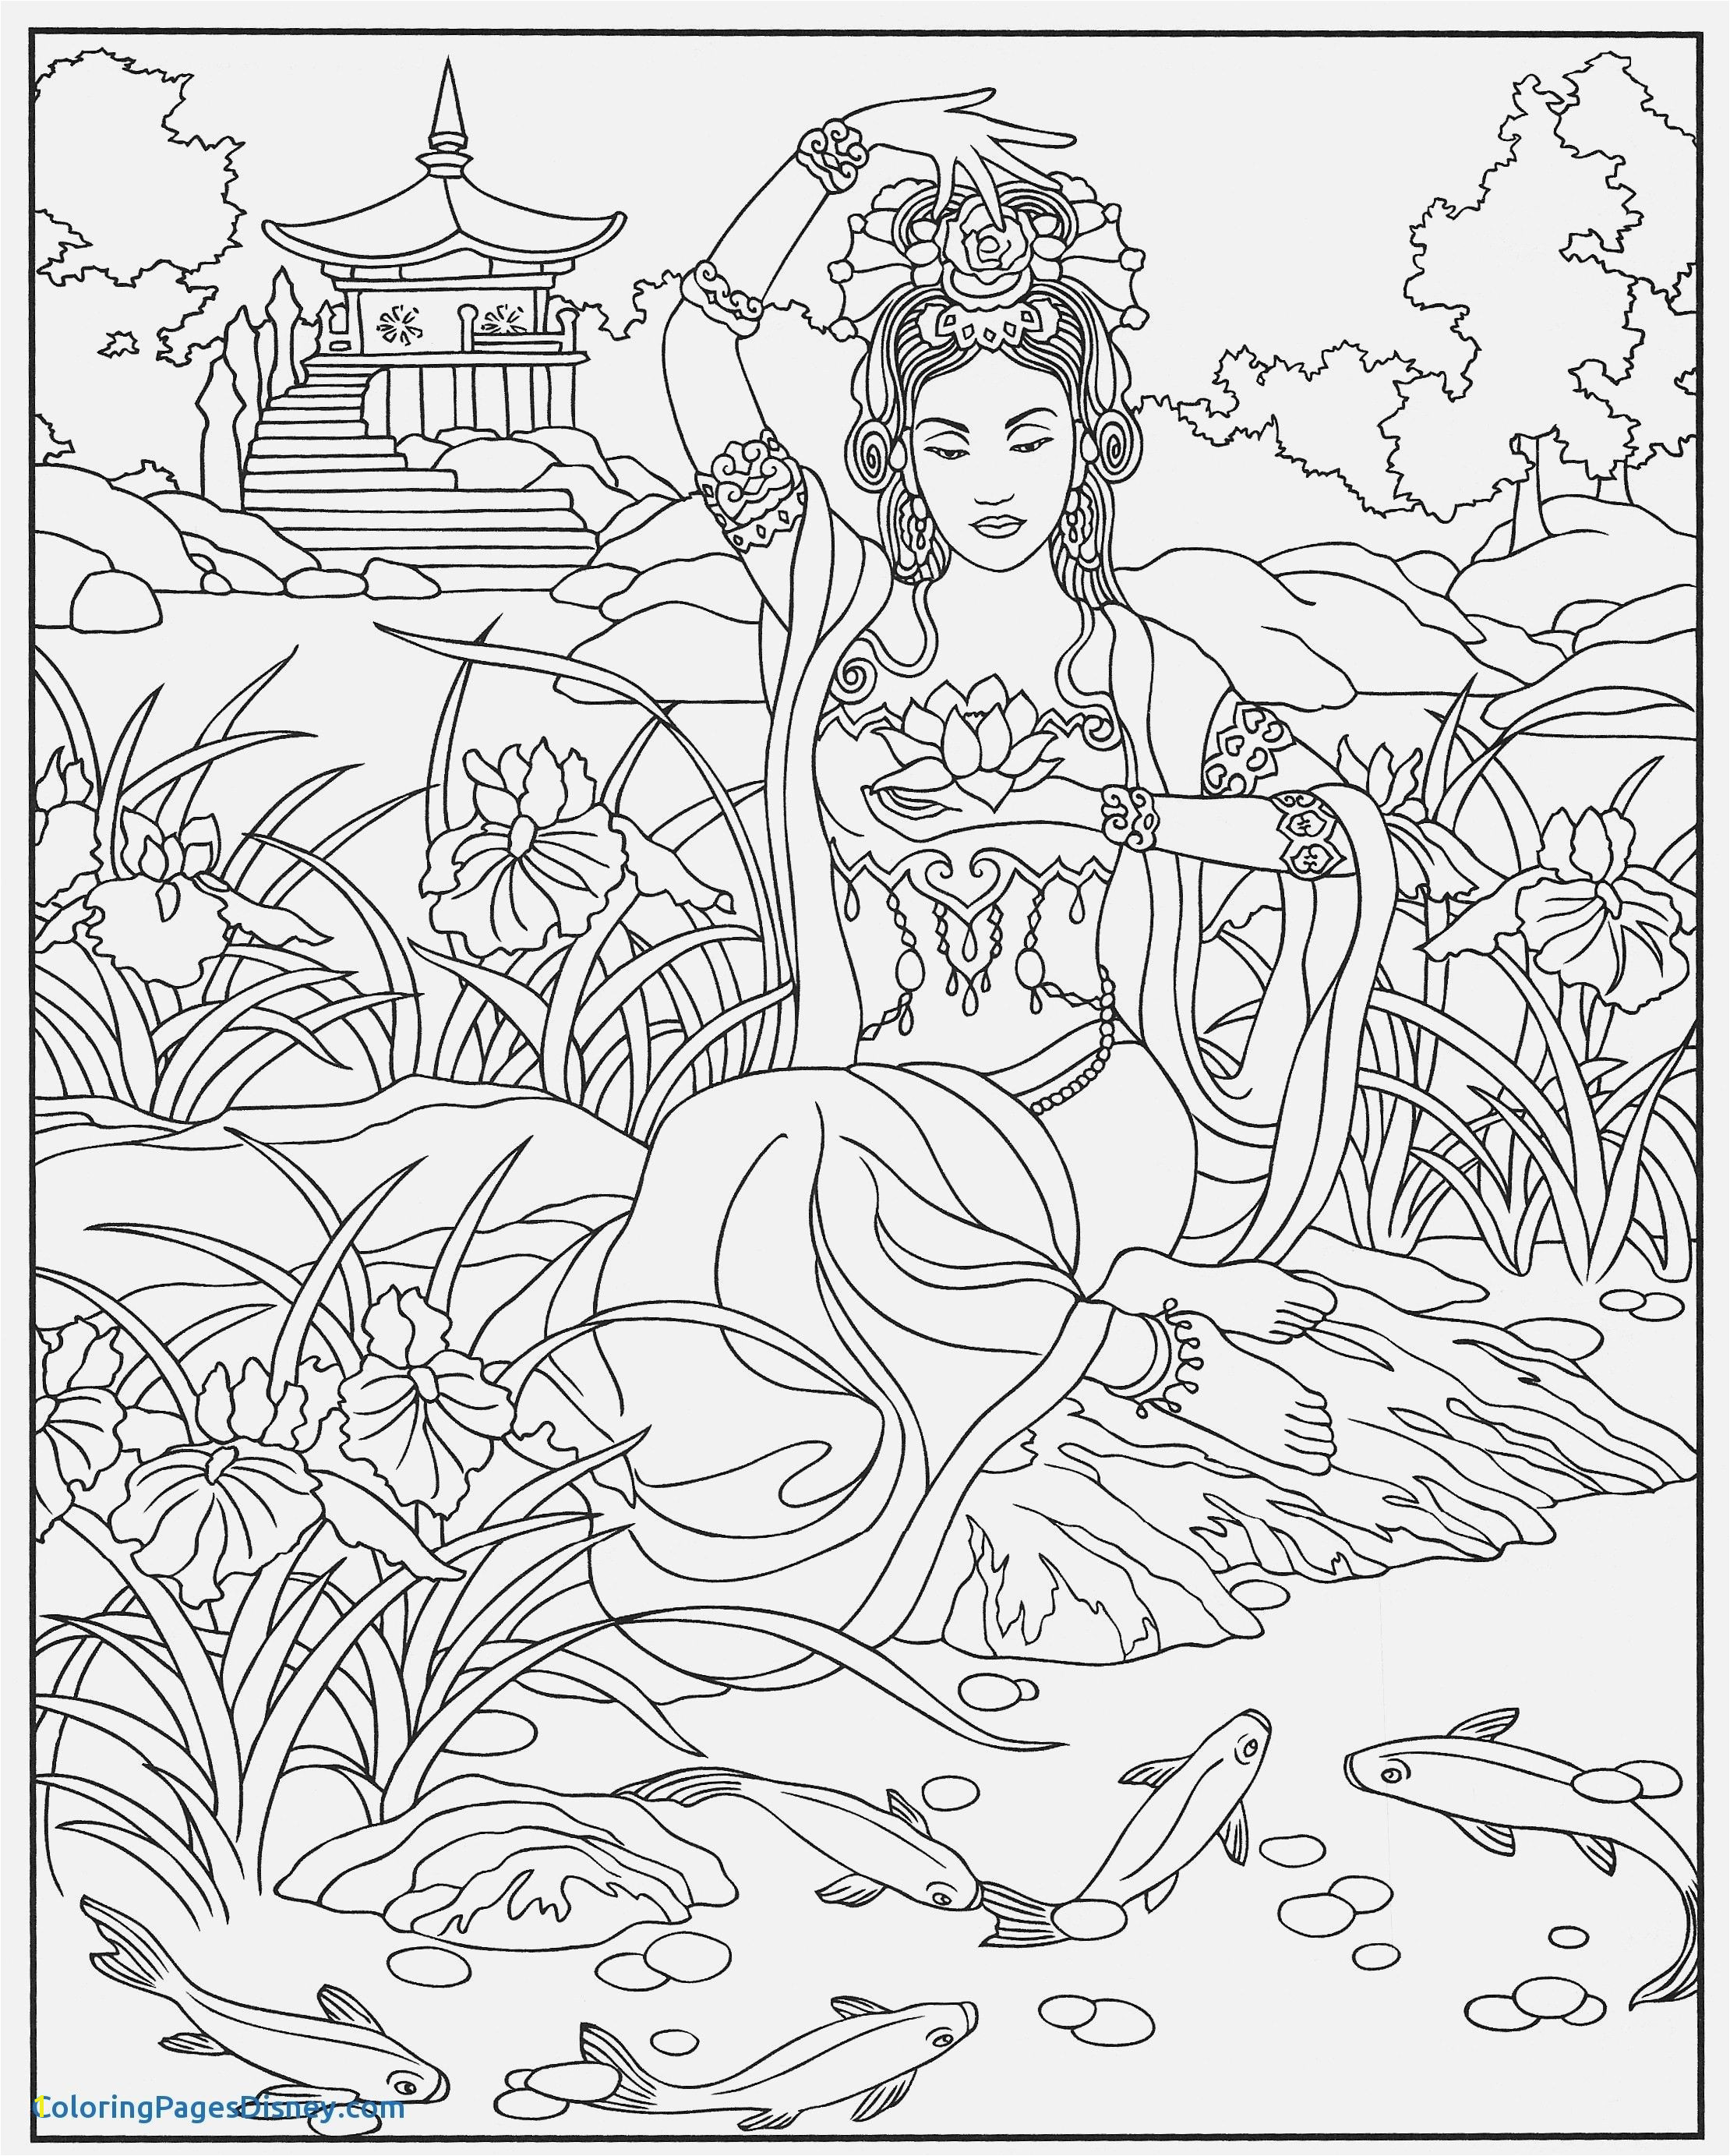 Fashion Coloring Pages – Through the thousand pictures on the net concerning fashion coloring pages